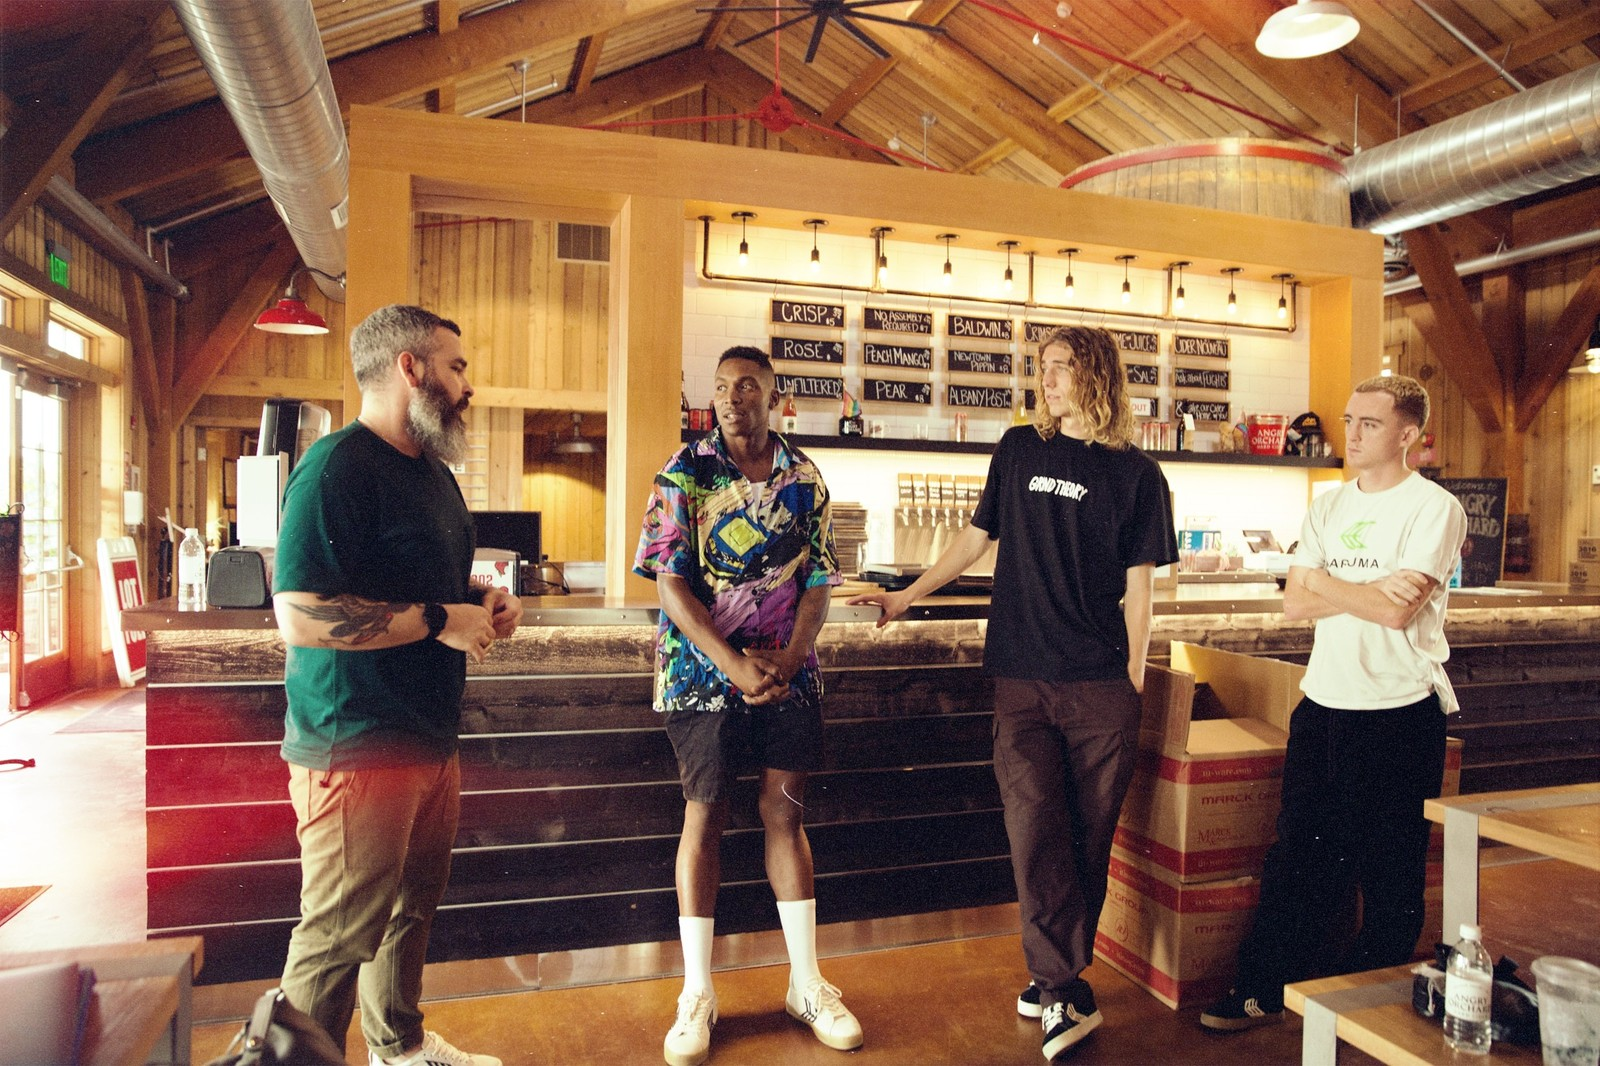 Skategoat and BRYTE Visit Angry Orchard, Come Back With Collaboration